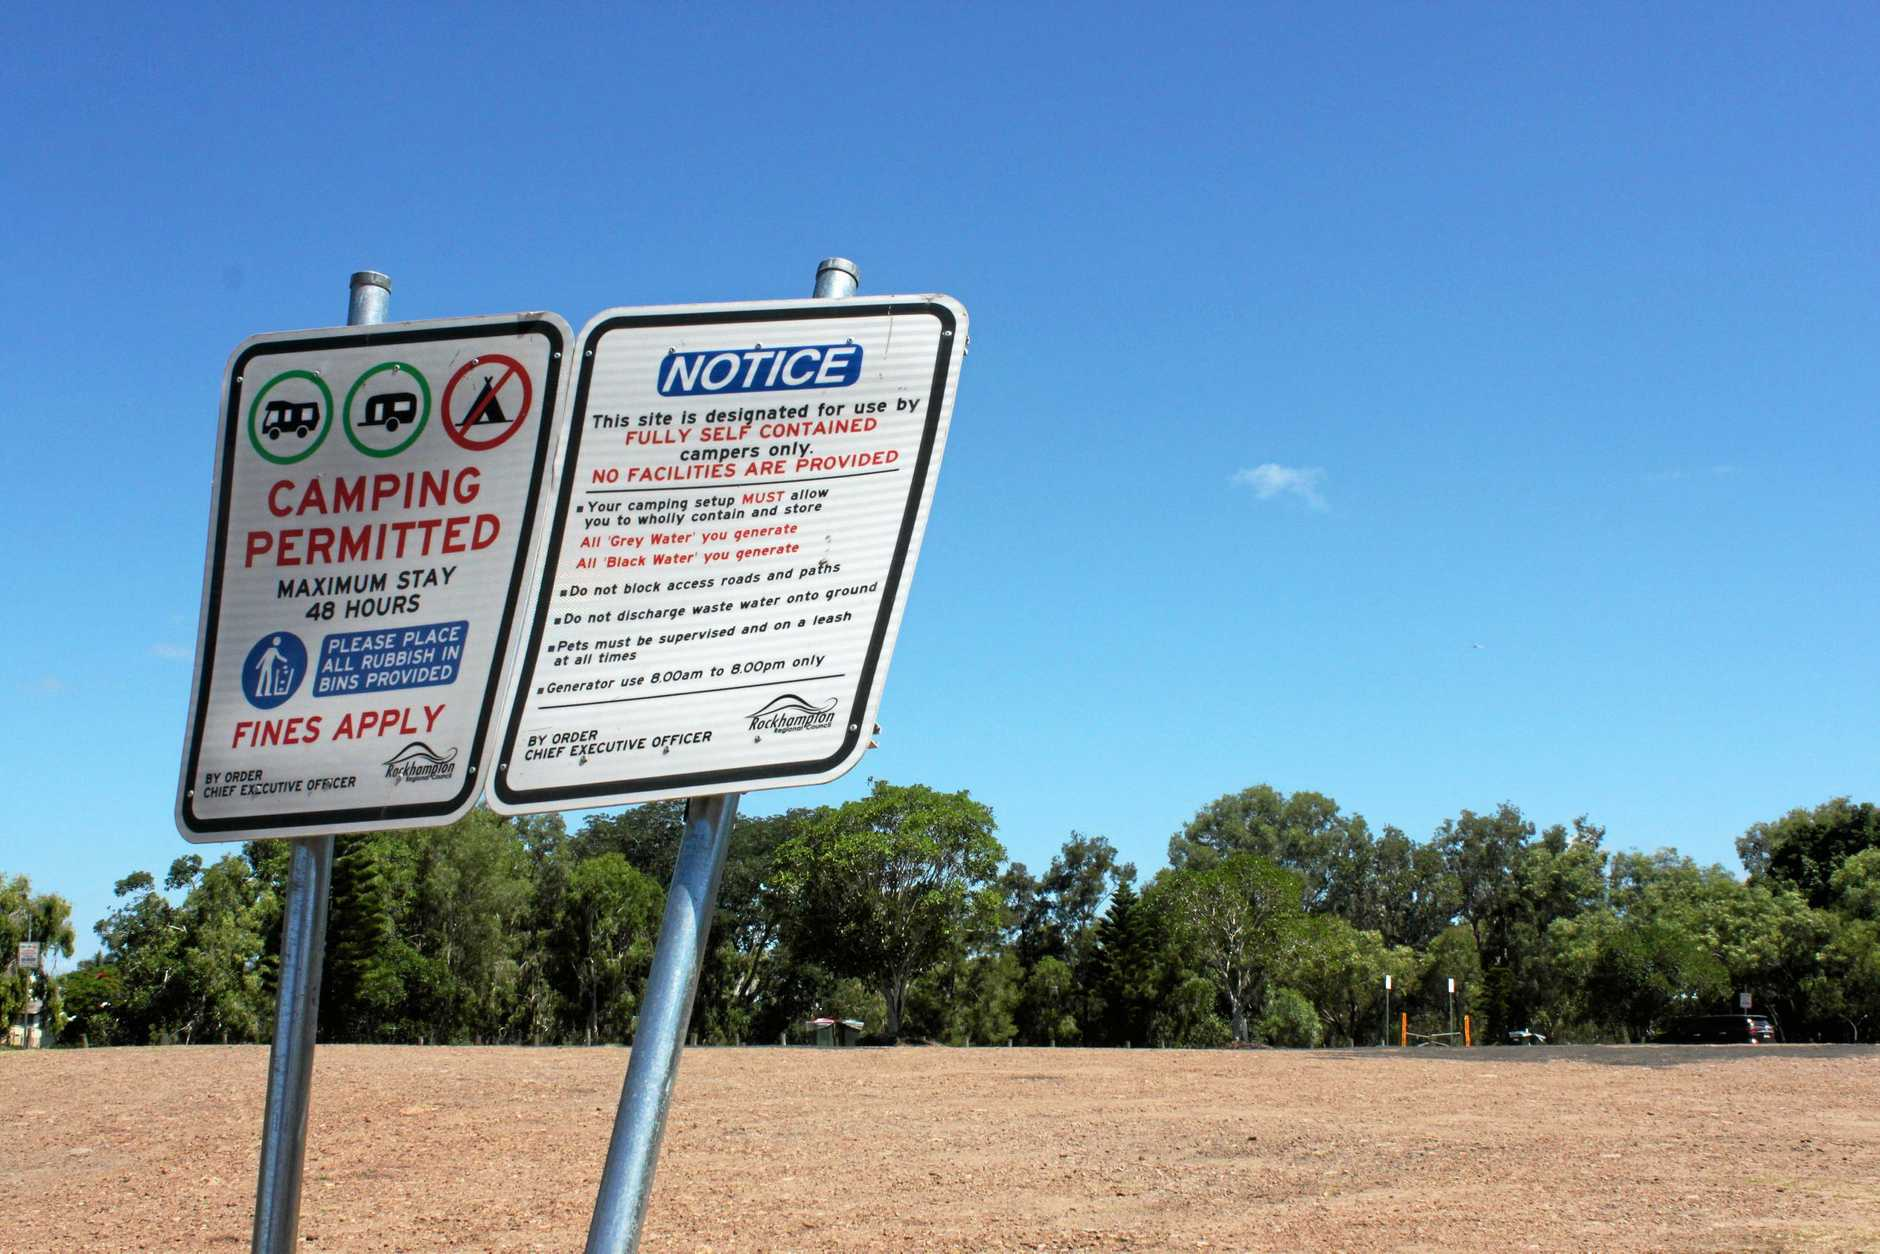 The free camping area at Kershaw Gardens was empty yesterday after Rockhampton caravan park owners took legal action through Caravan Association Queensland against Rockhampton Regional Council to cease the operation.